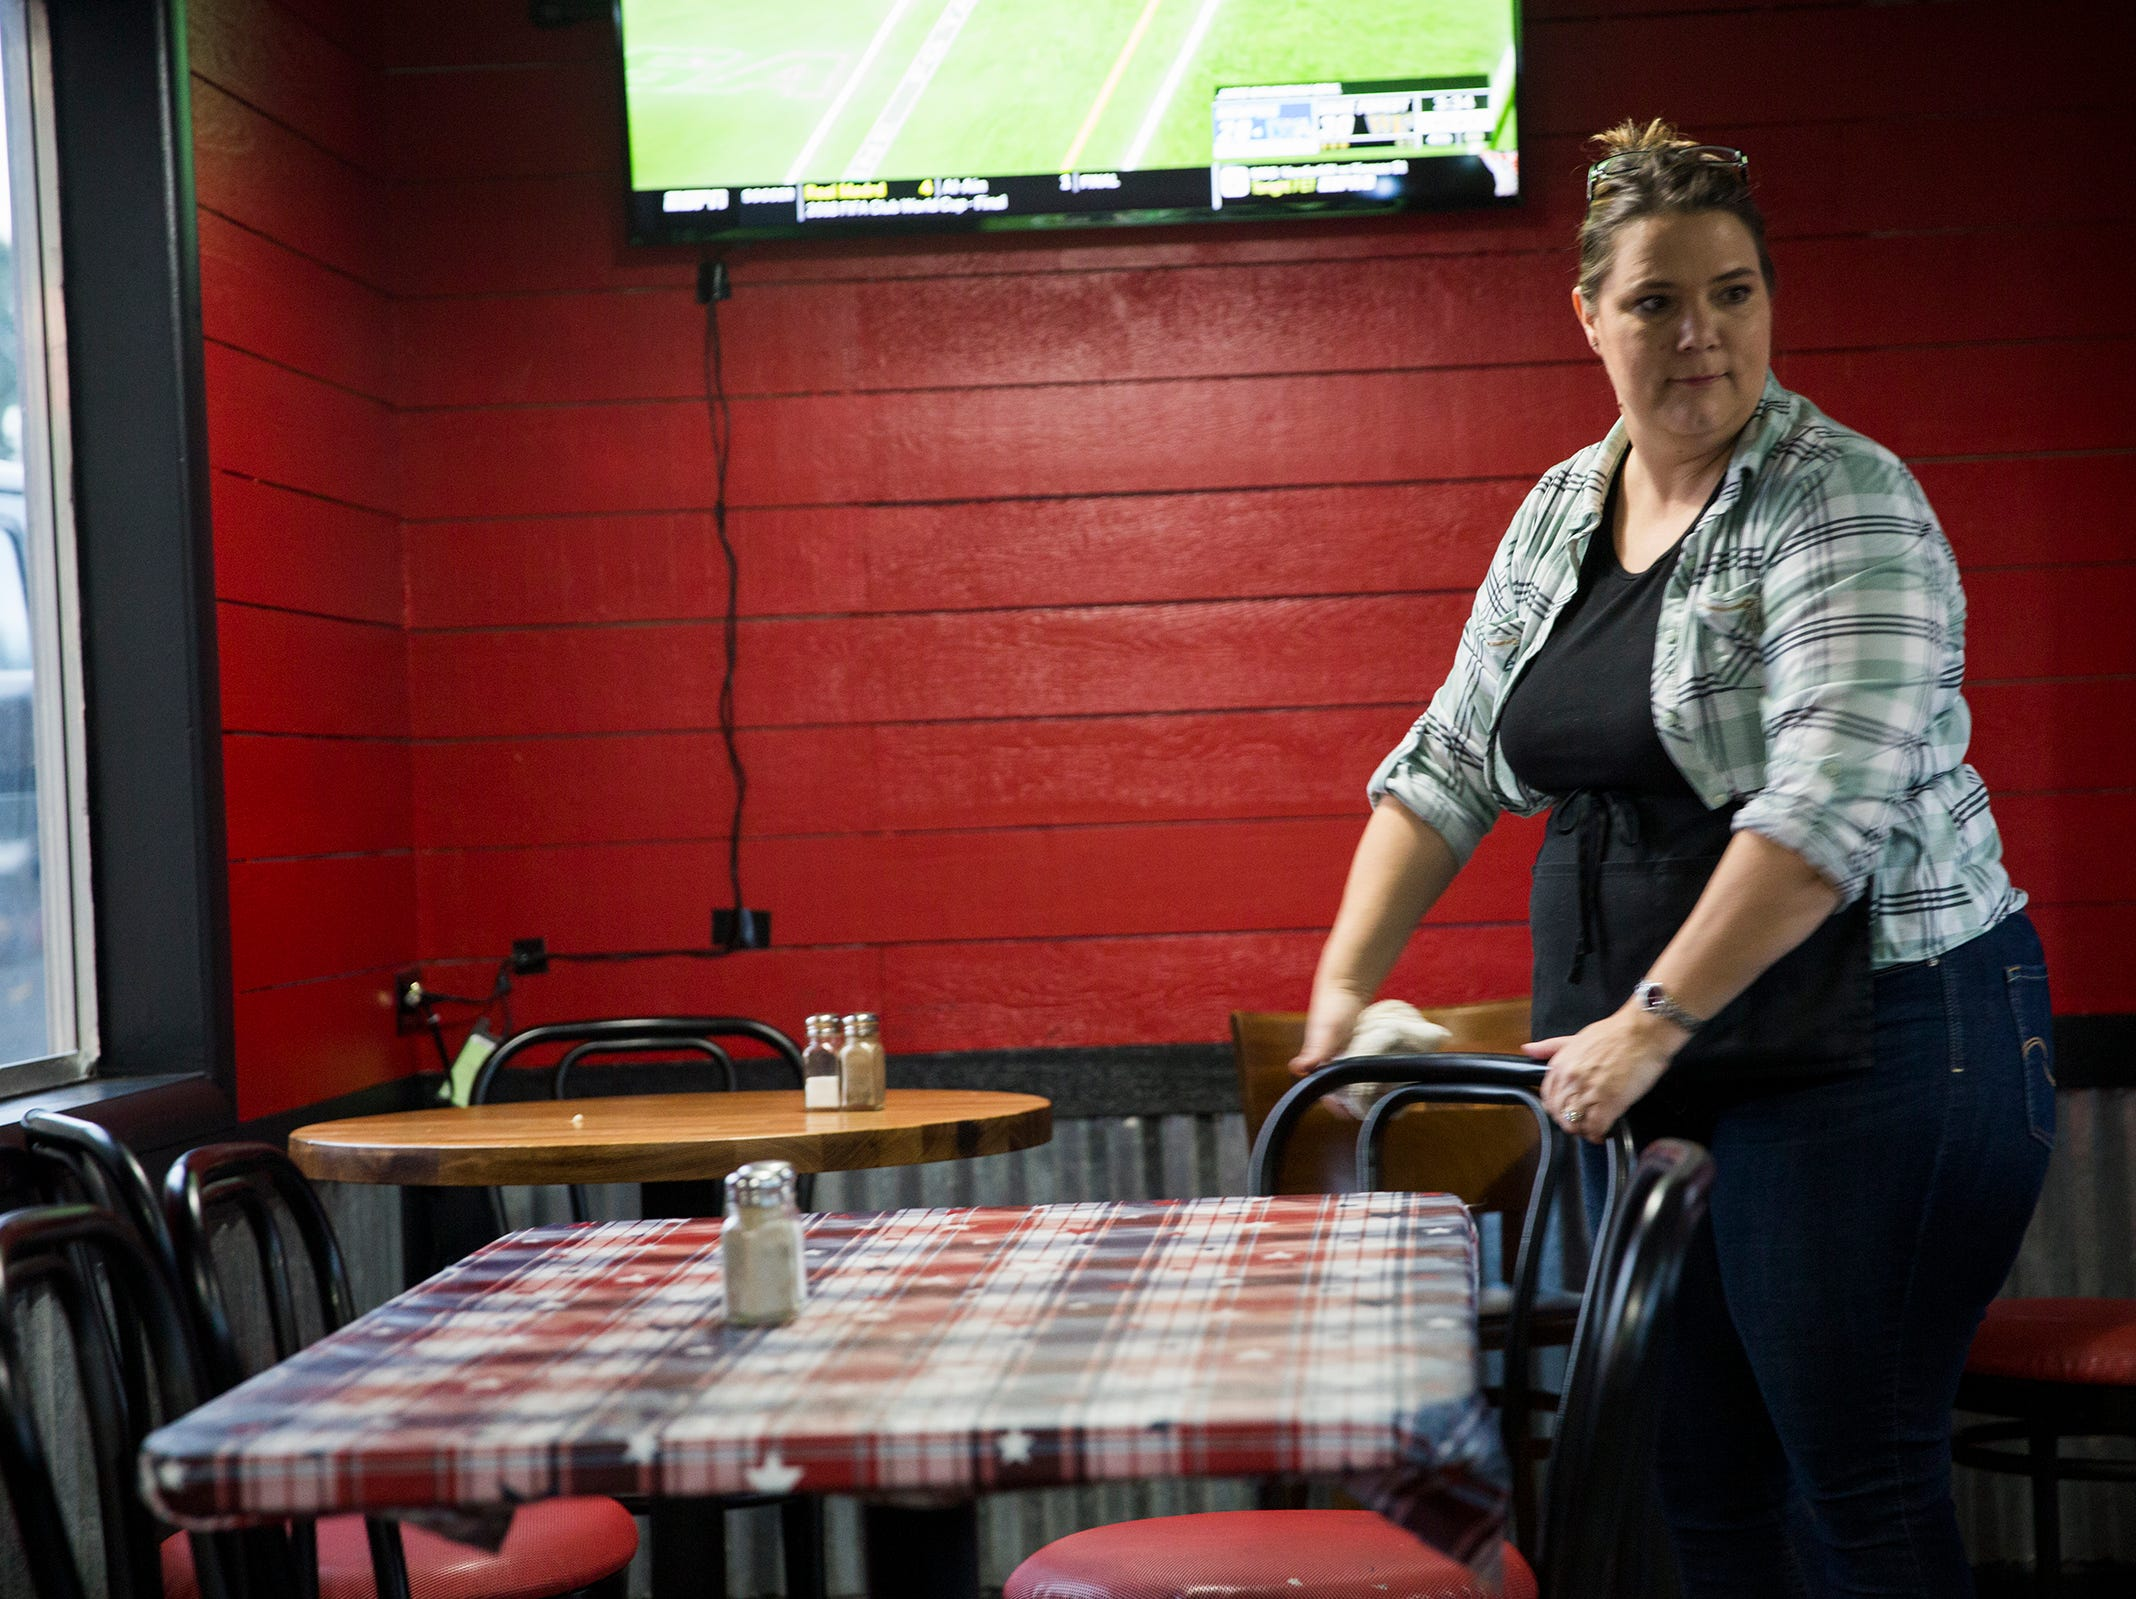 Julie Lorraine wipes down tables at her restaurant Squatchy's BBQ in Stayton on Saturday, Dec. 22, 2018.